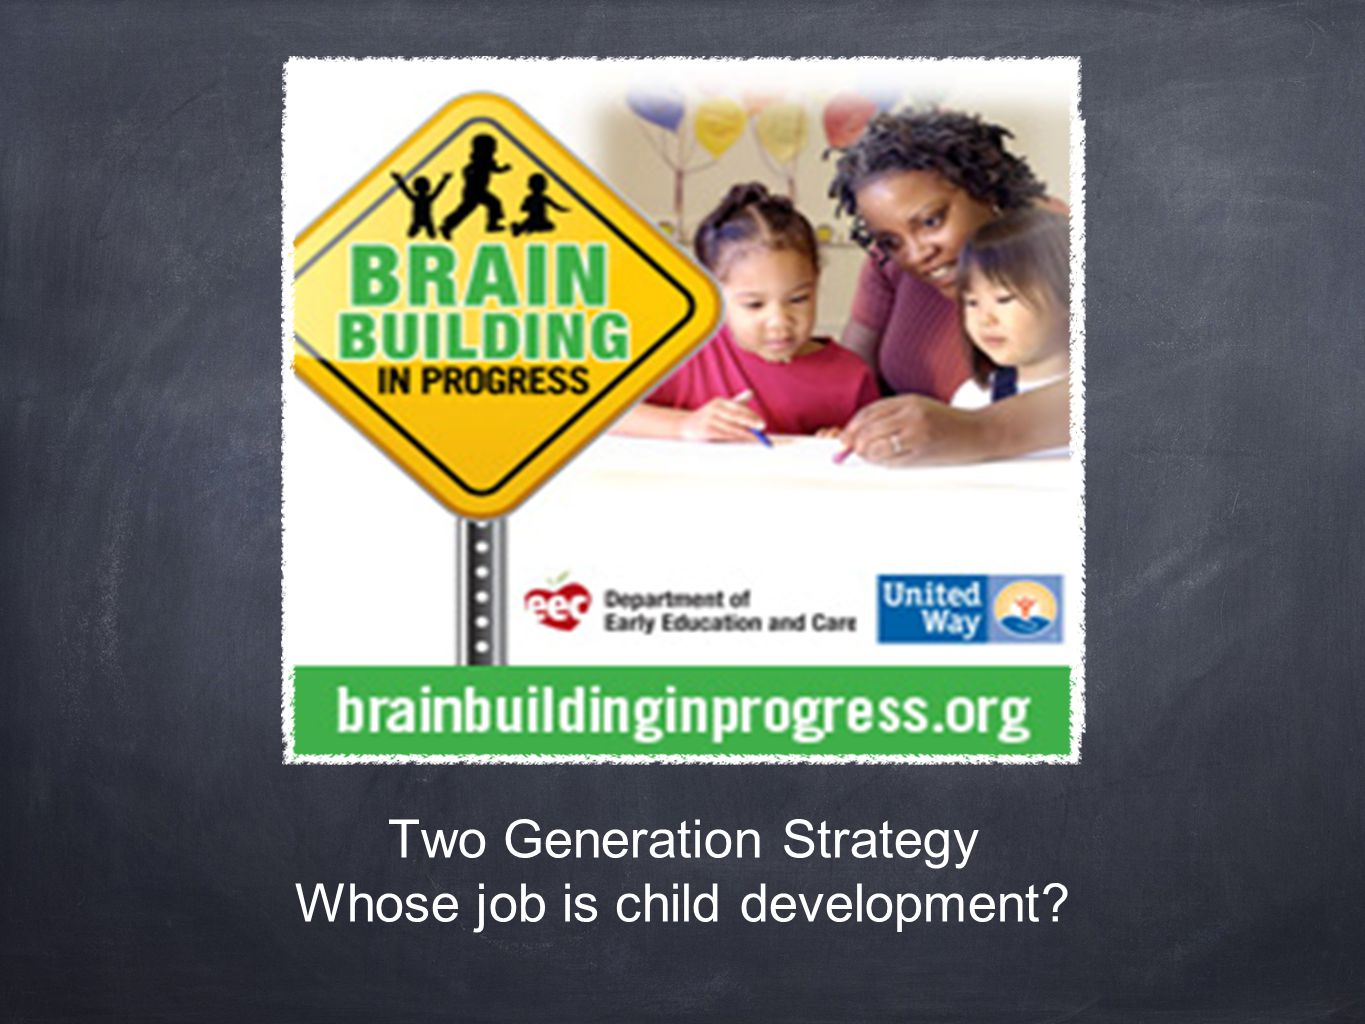 Two Generation Strategy Whose job is child development